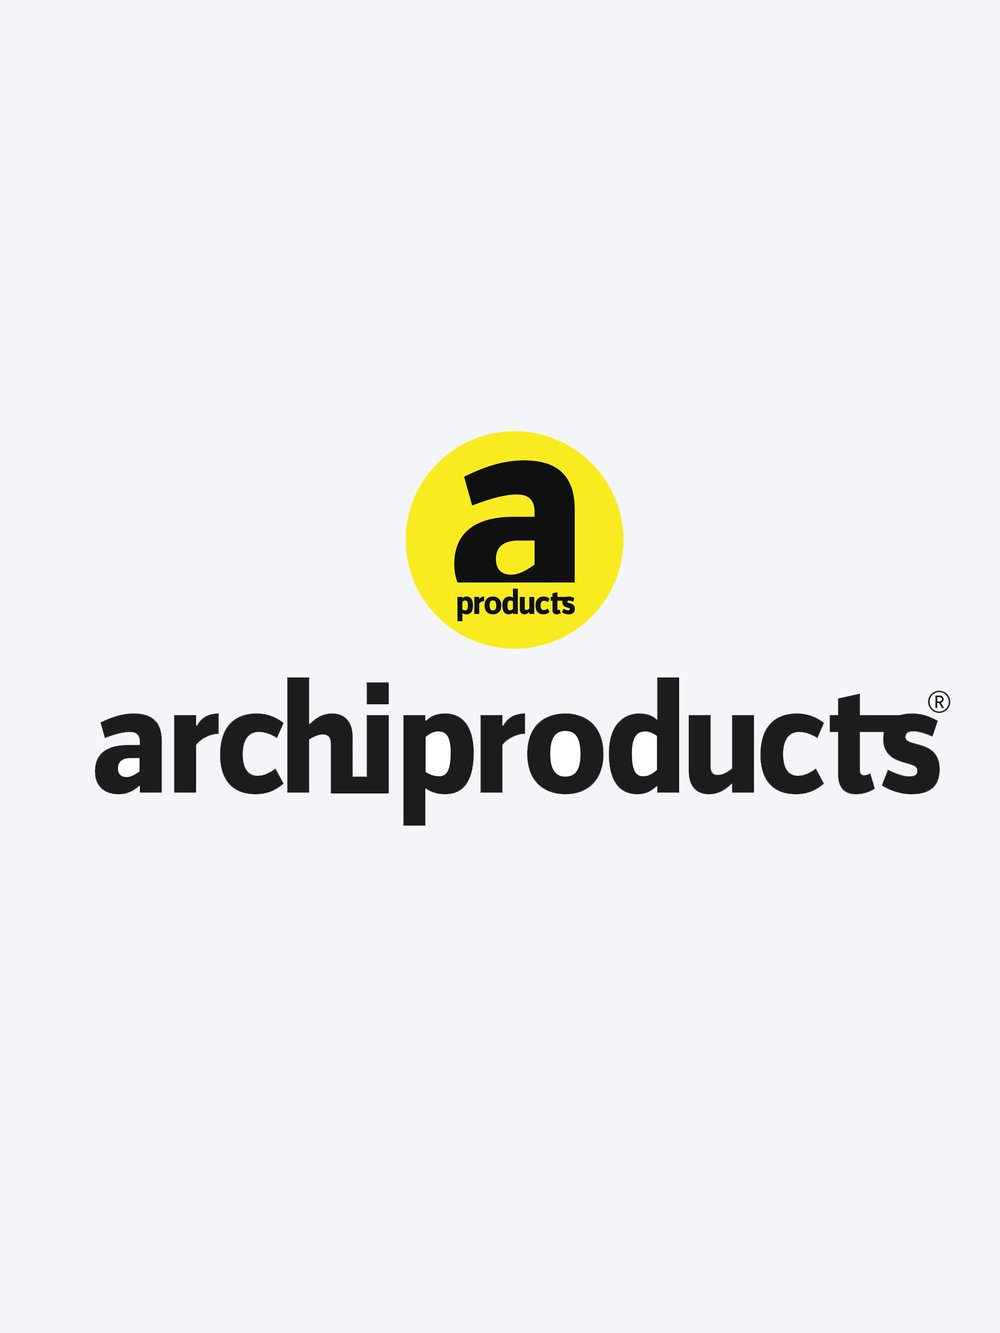 Archiproducts – Oct 15